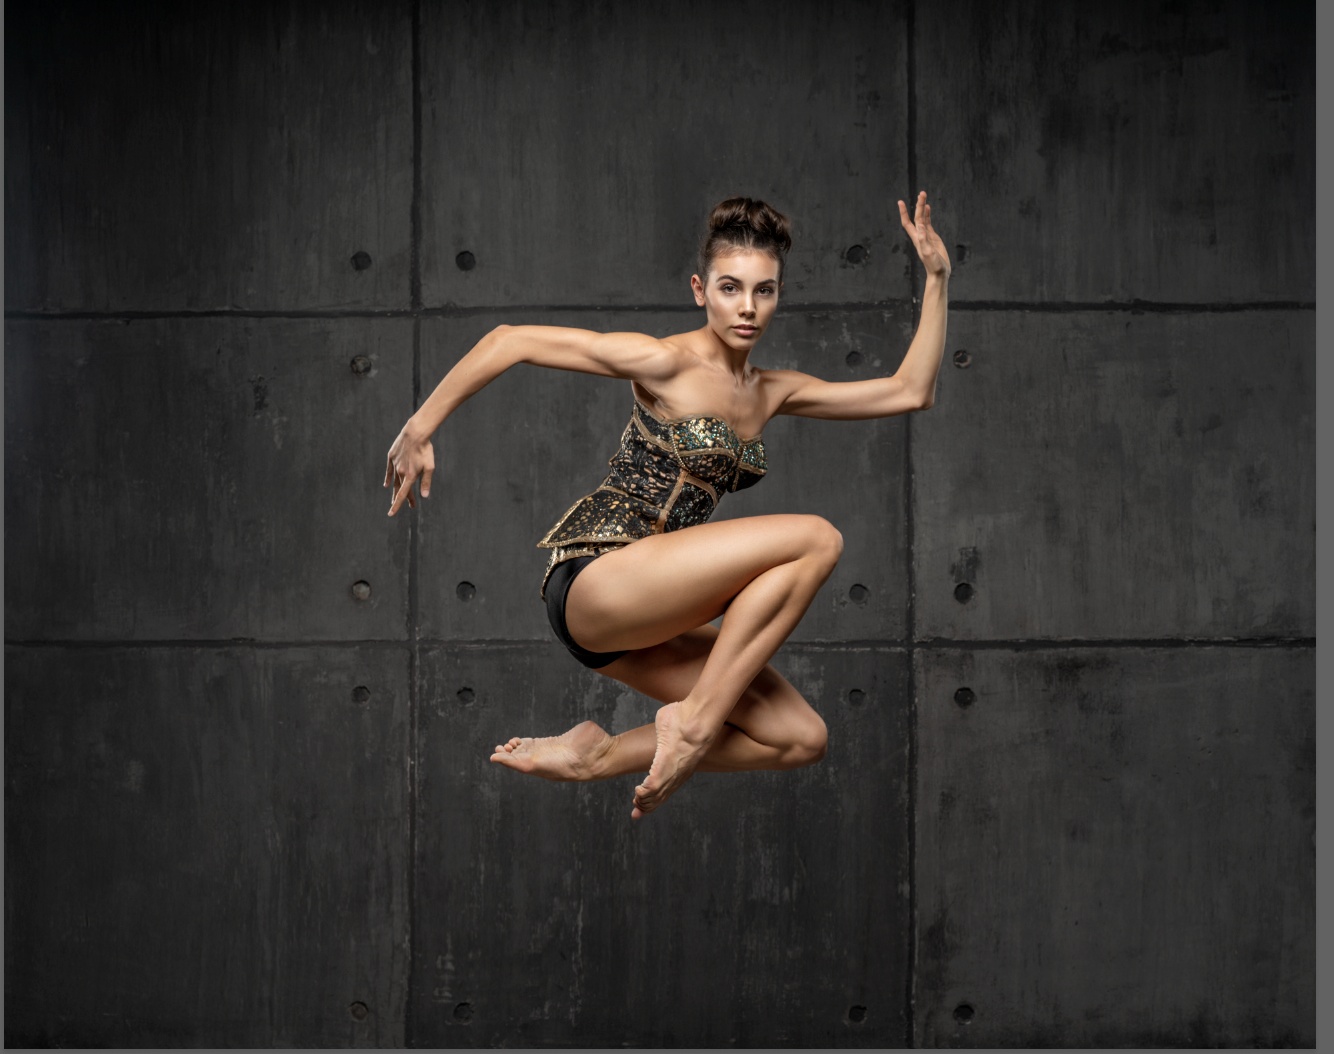 Dancer jump – part 1